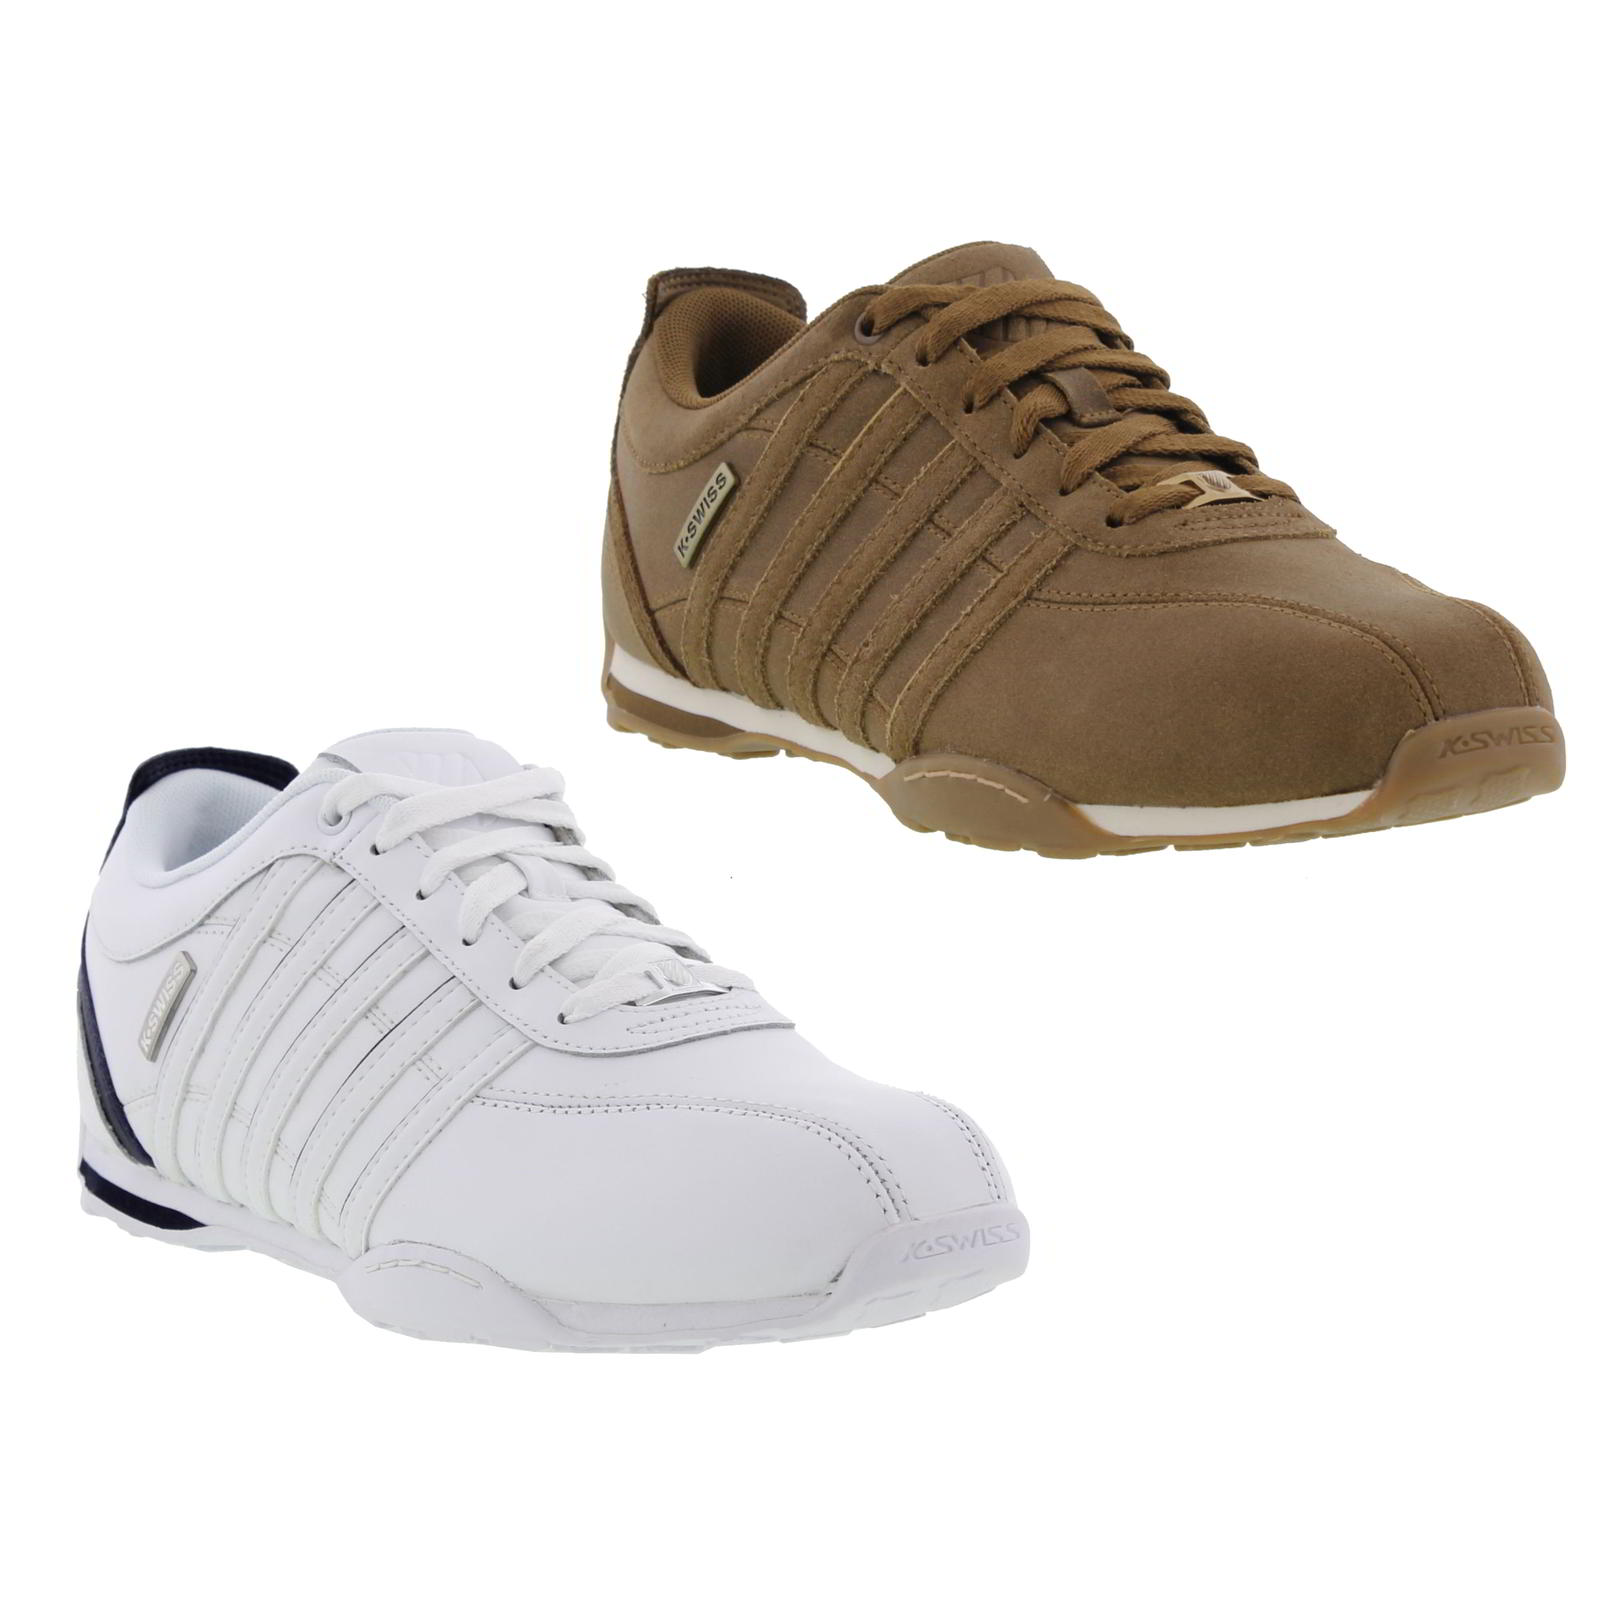 k swiss arvee 1 5 mens brown white leather lace up trainers size uk 8 10 ebay. Black Bedroom Furniture Sets. Home Design Ideas